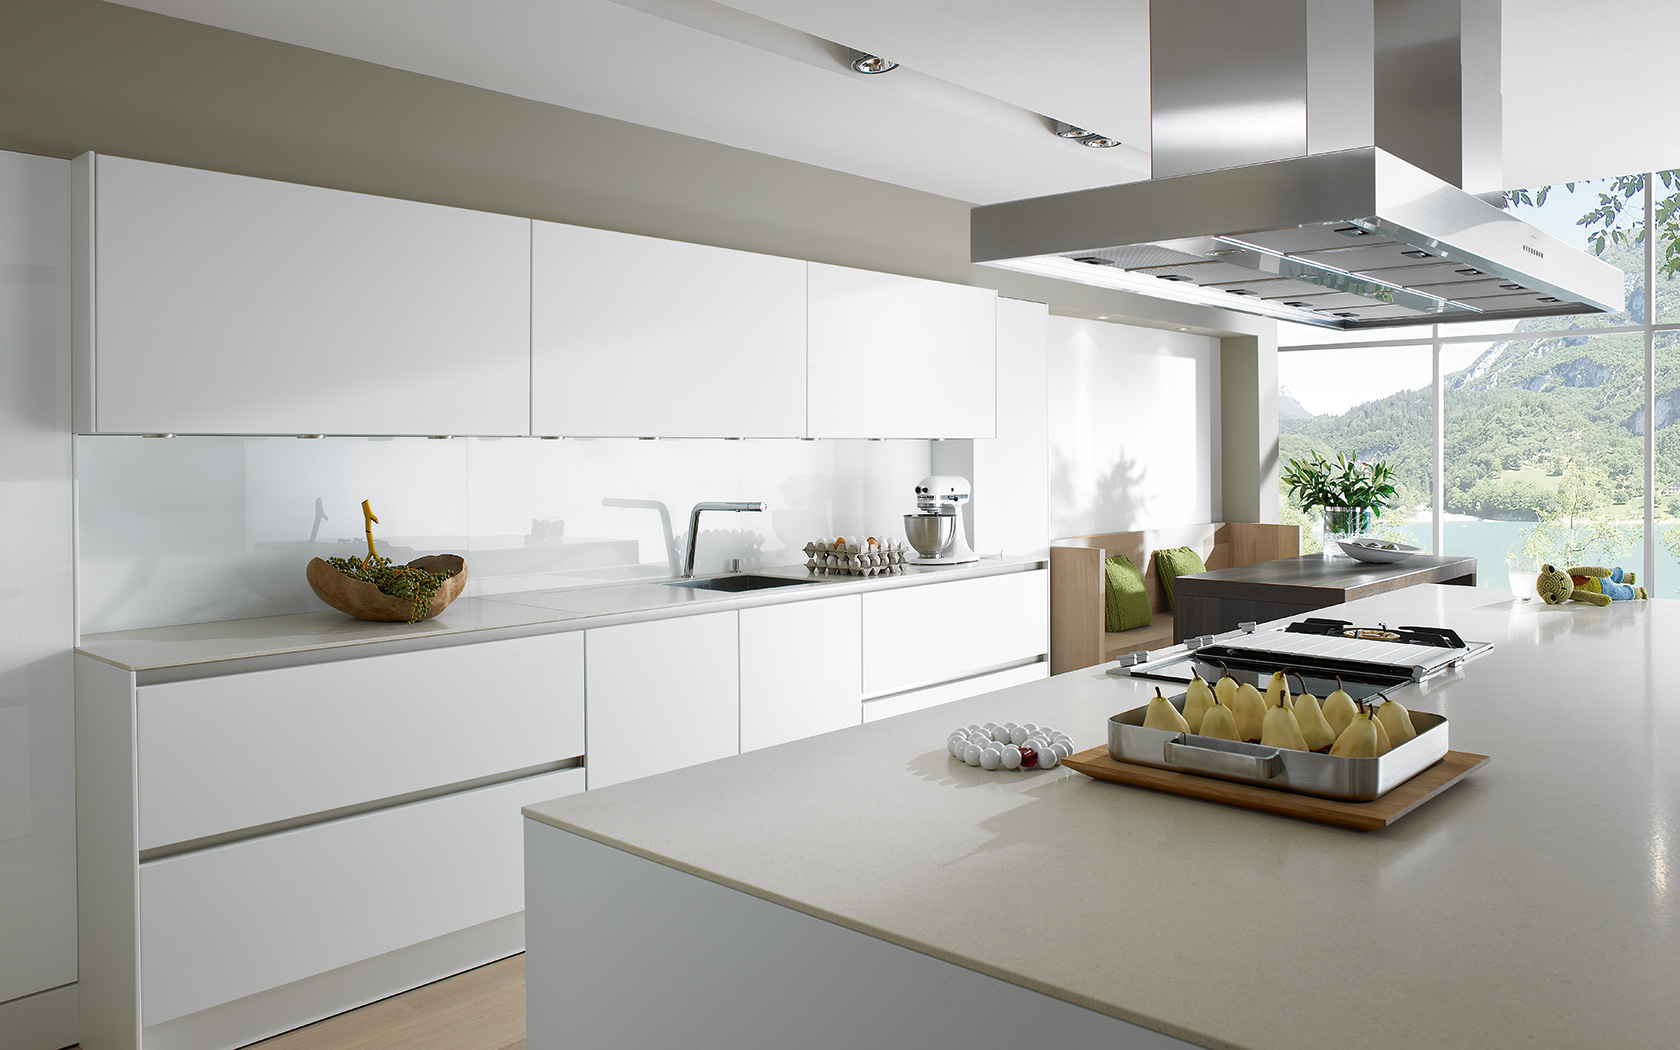 Siematic s2 from the inventors of the handle free kitchen. u2014 euro